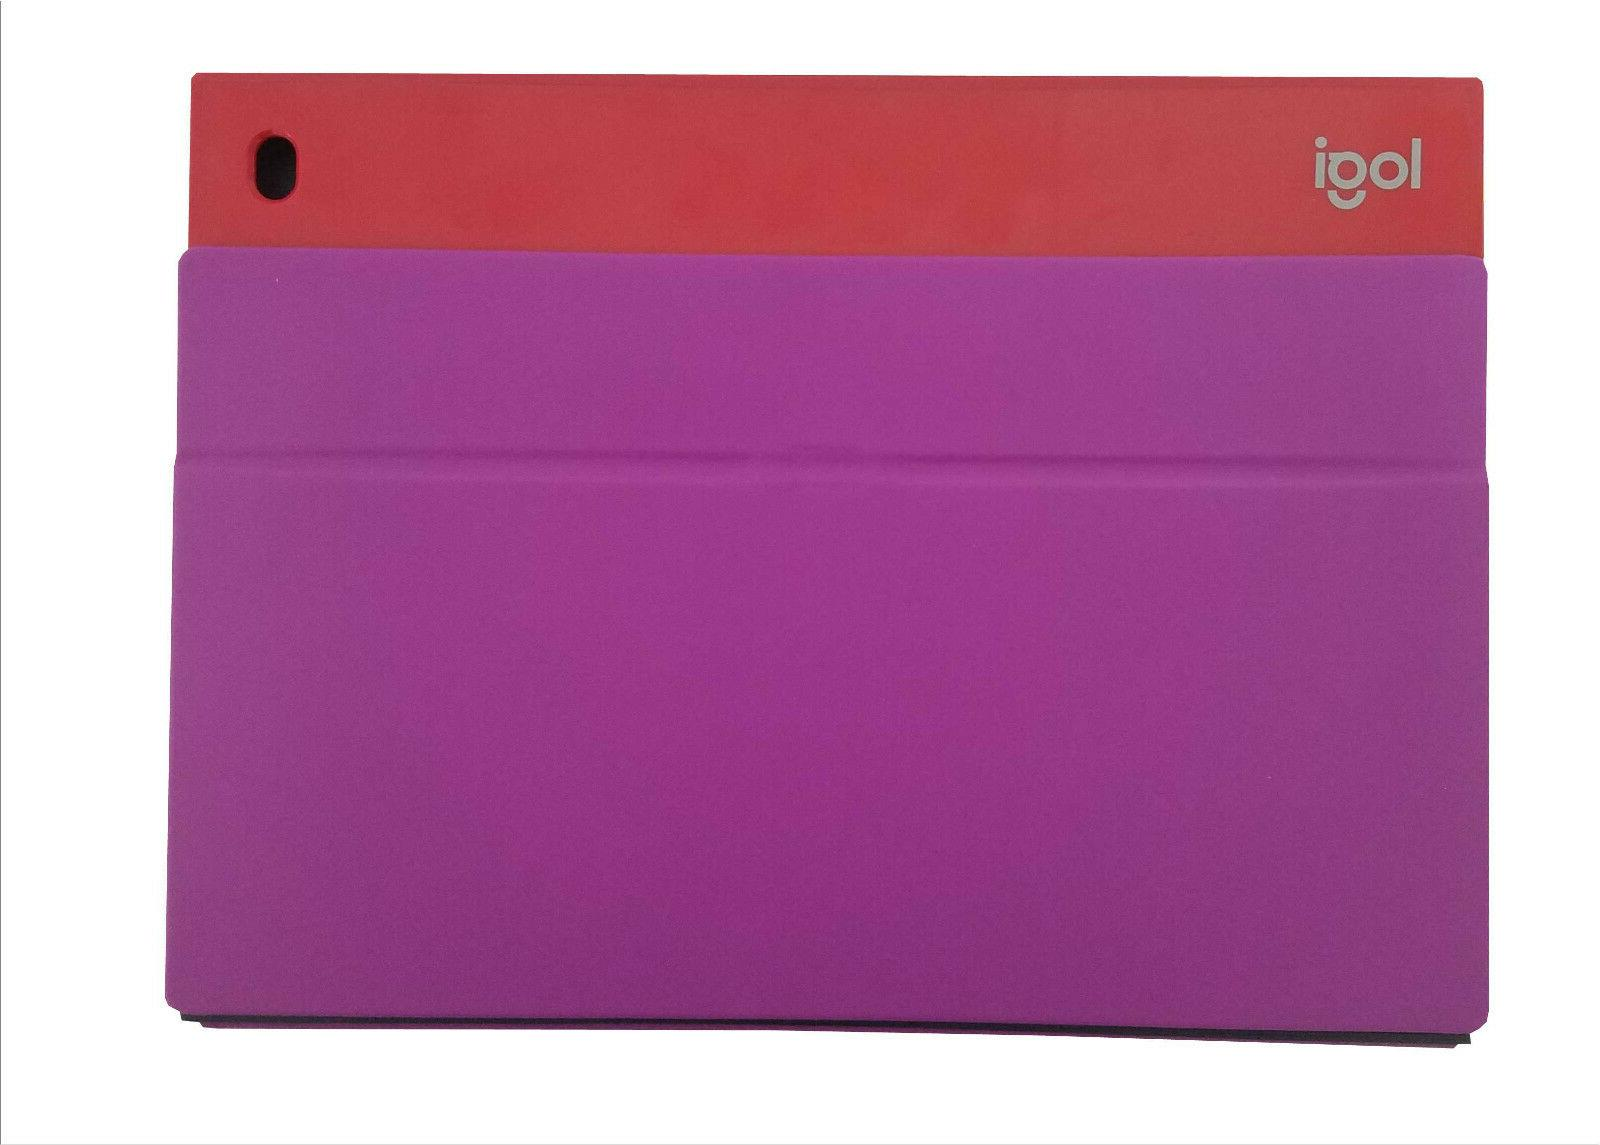 Logitech Blok UltraThin Cover Case iPad Red Violet